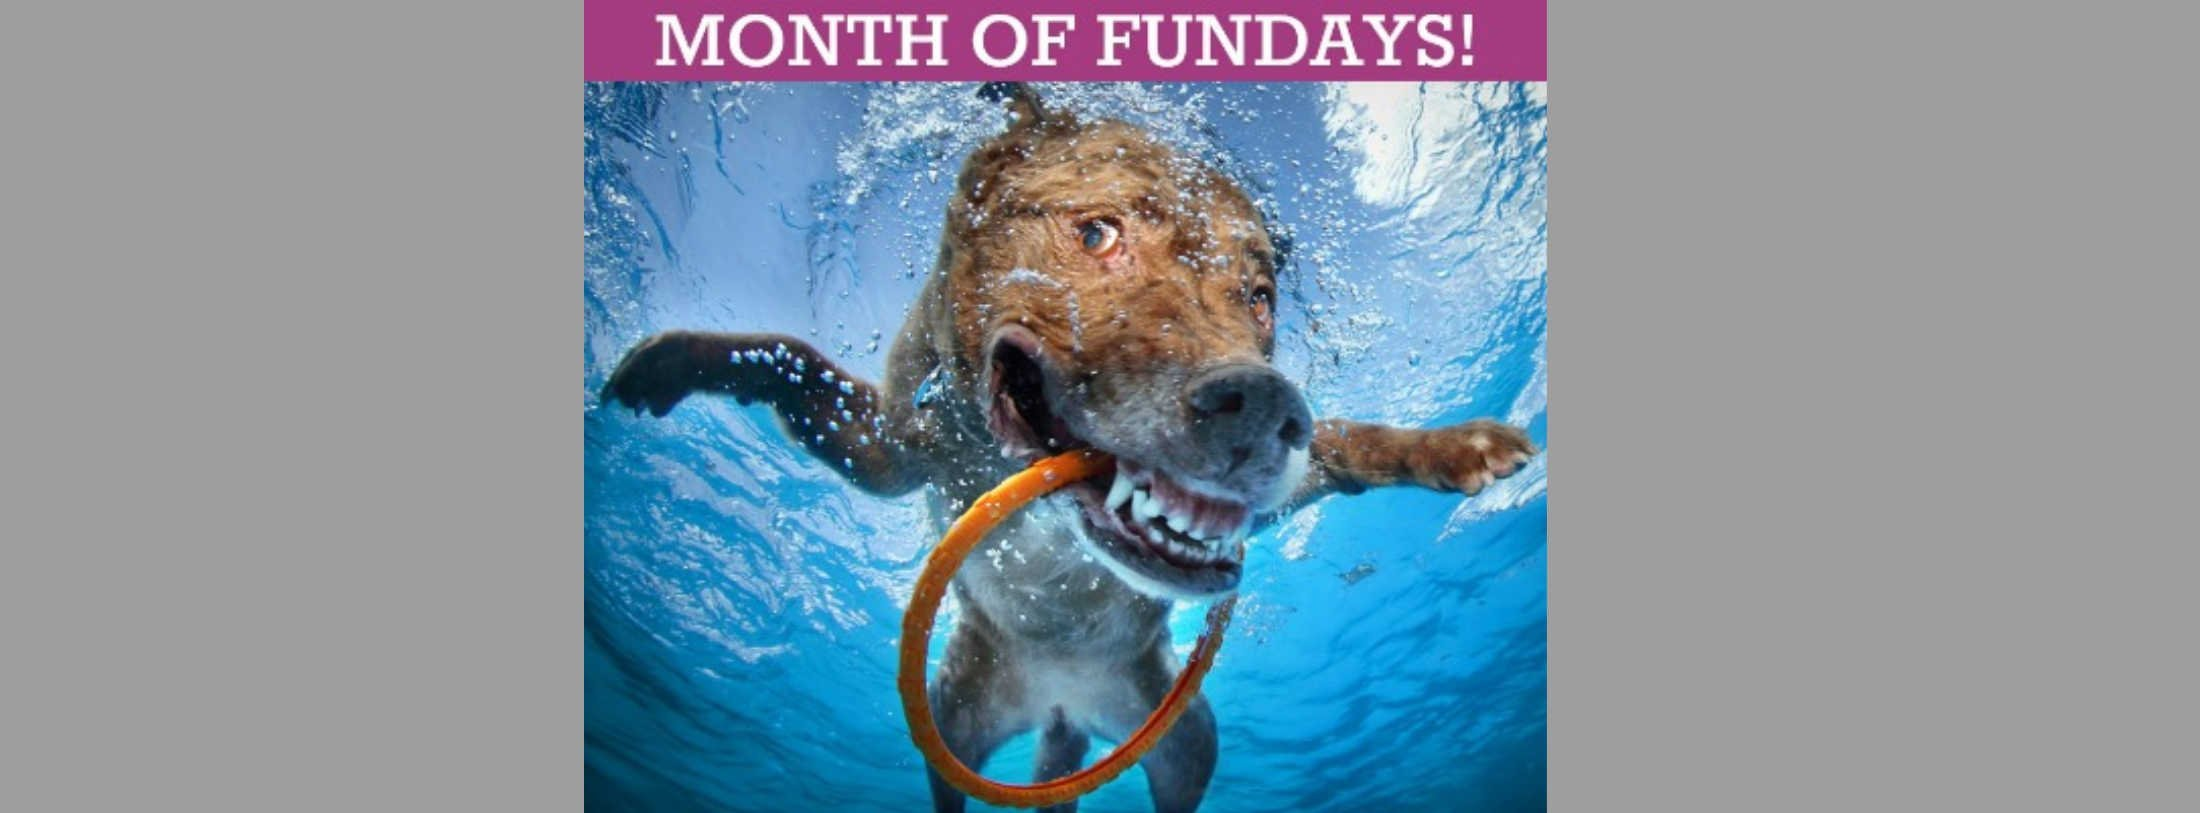 Month of Fundays March 2020: Good Times & Fun Events on the Eastern Shore and in Delaware